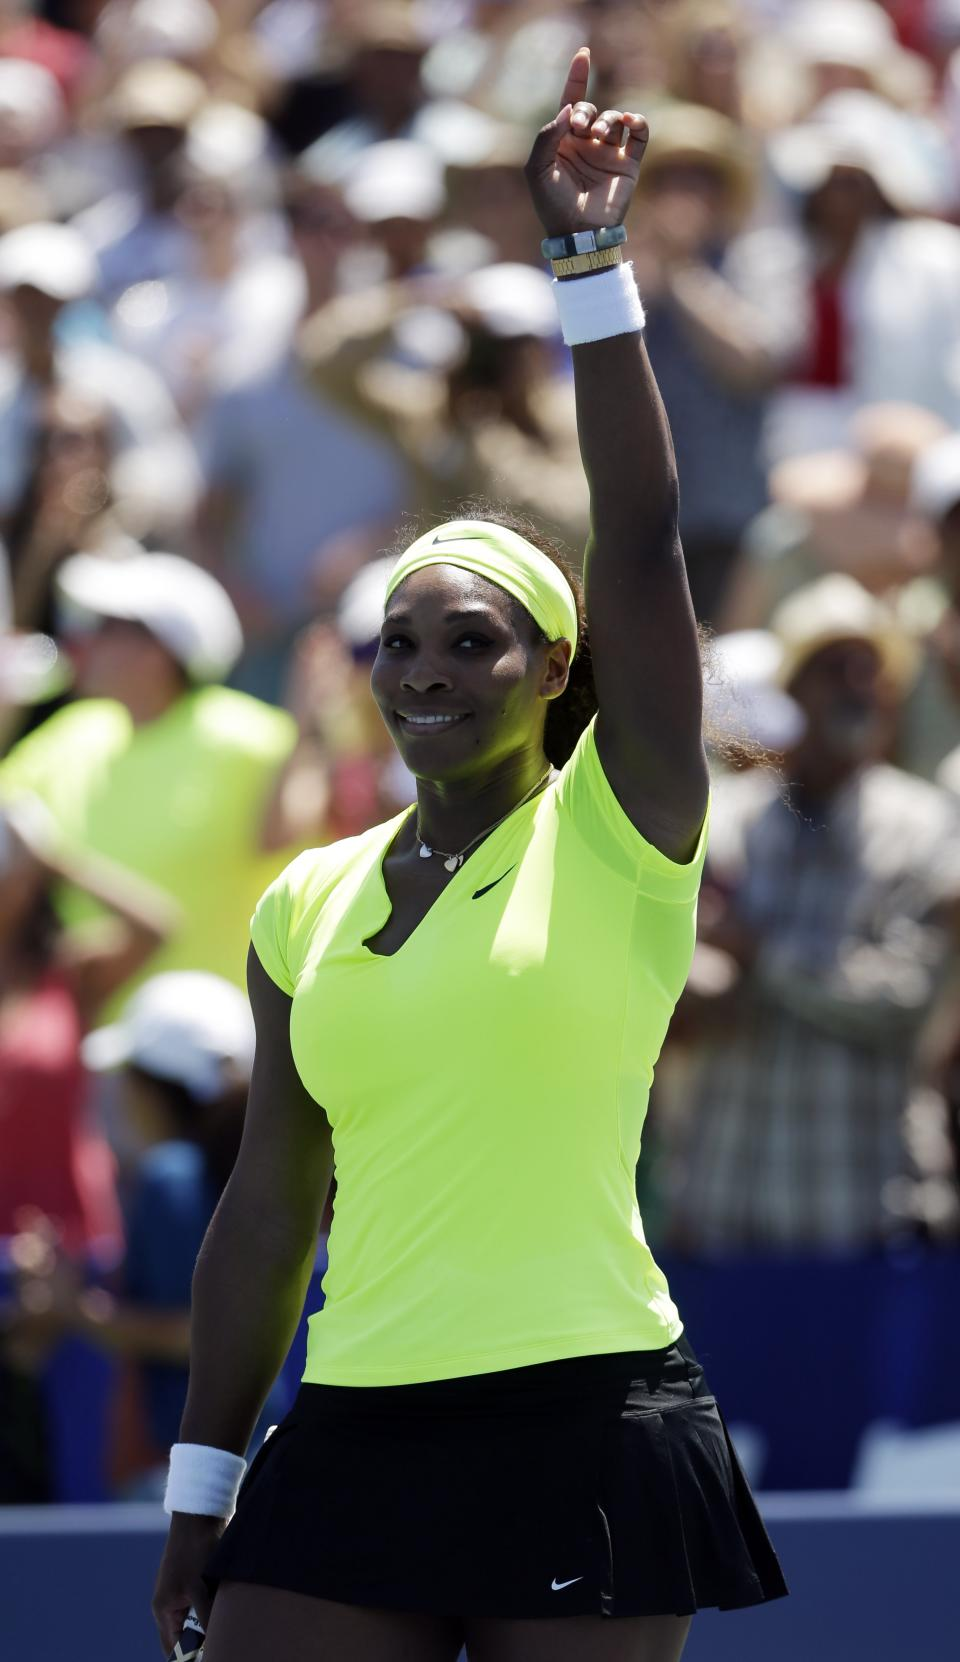 Serena Williams, of the United States, celebrates after defeating Coco Vandeweghe, of the United States, during the final of the Bank of the West tennis tournament on Sunday, July 15, 2012, in Stanford, Calif.  Williams won 7-5, 6-3. (AP Photo/Marcio Jose Sanchez)